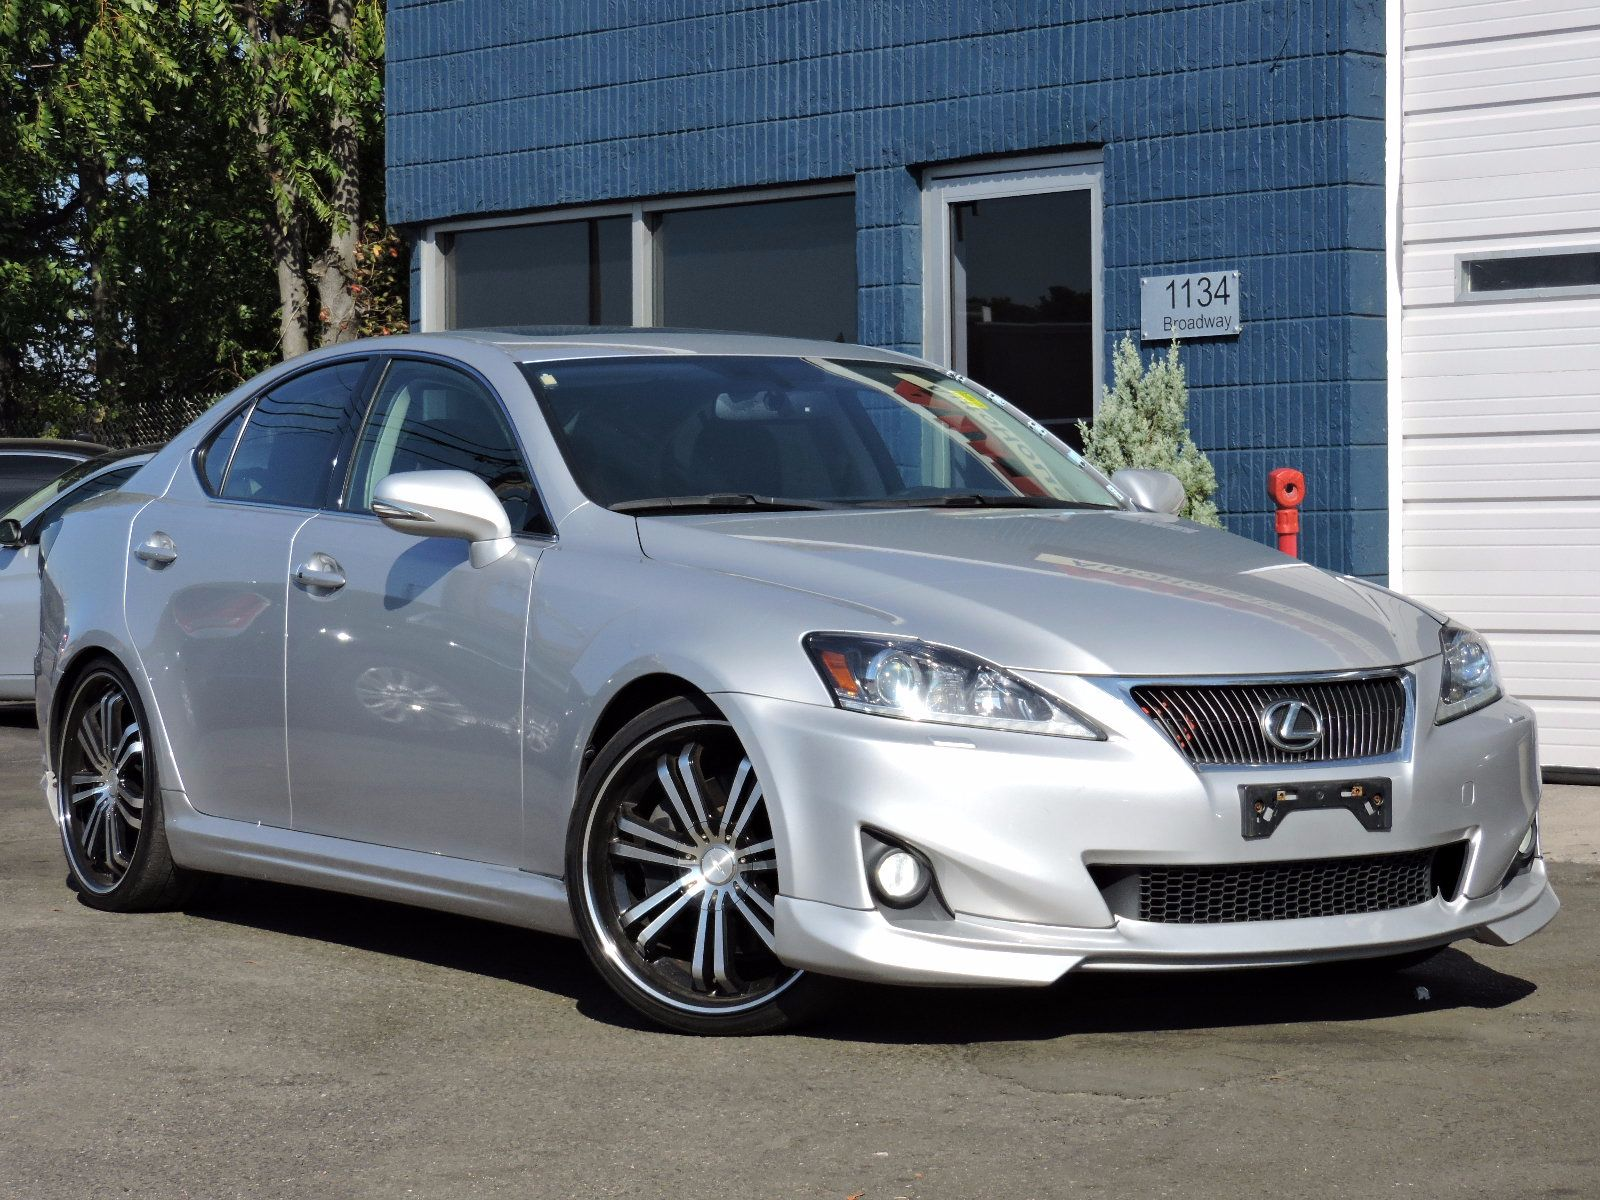 Superb 2011 Lexus IS 350   All Wheel Drive   Navigation ...